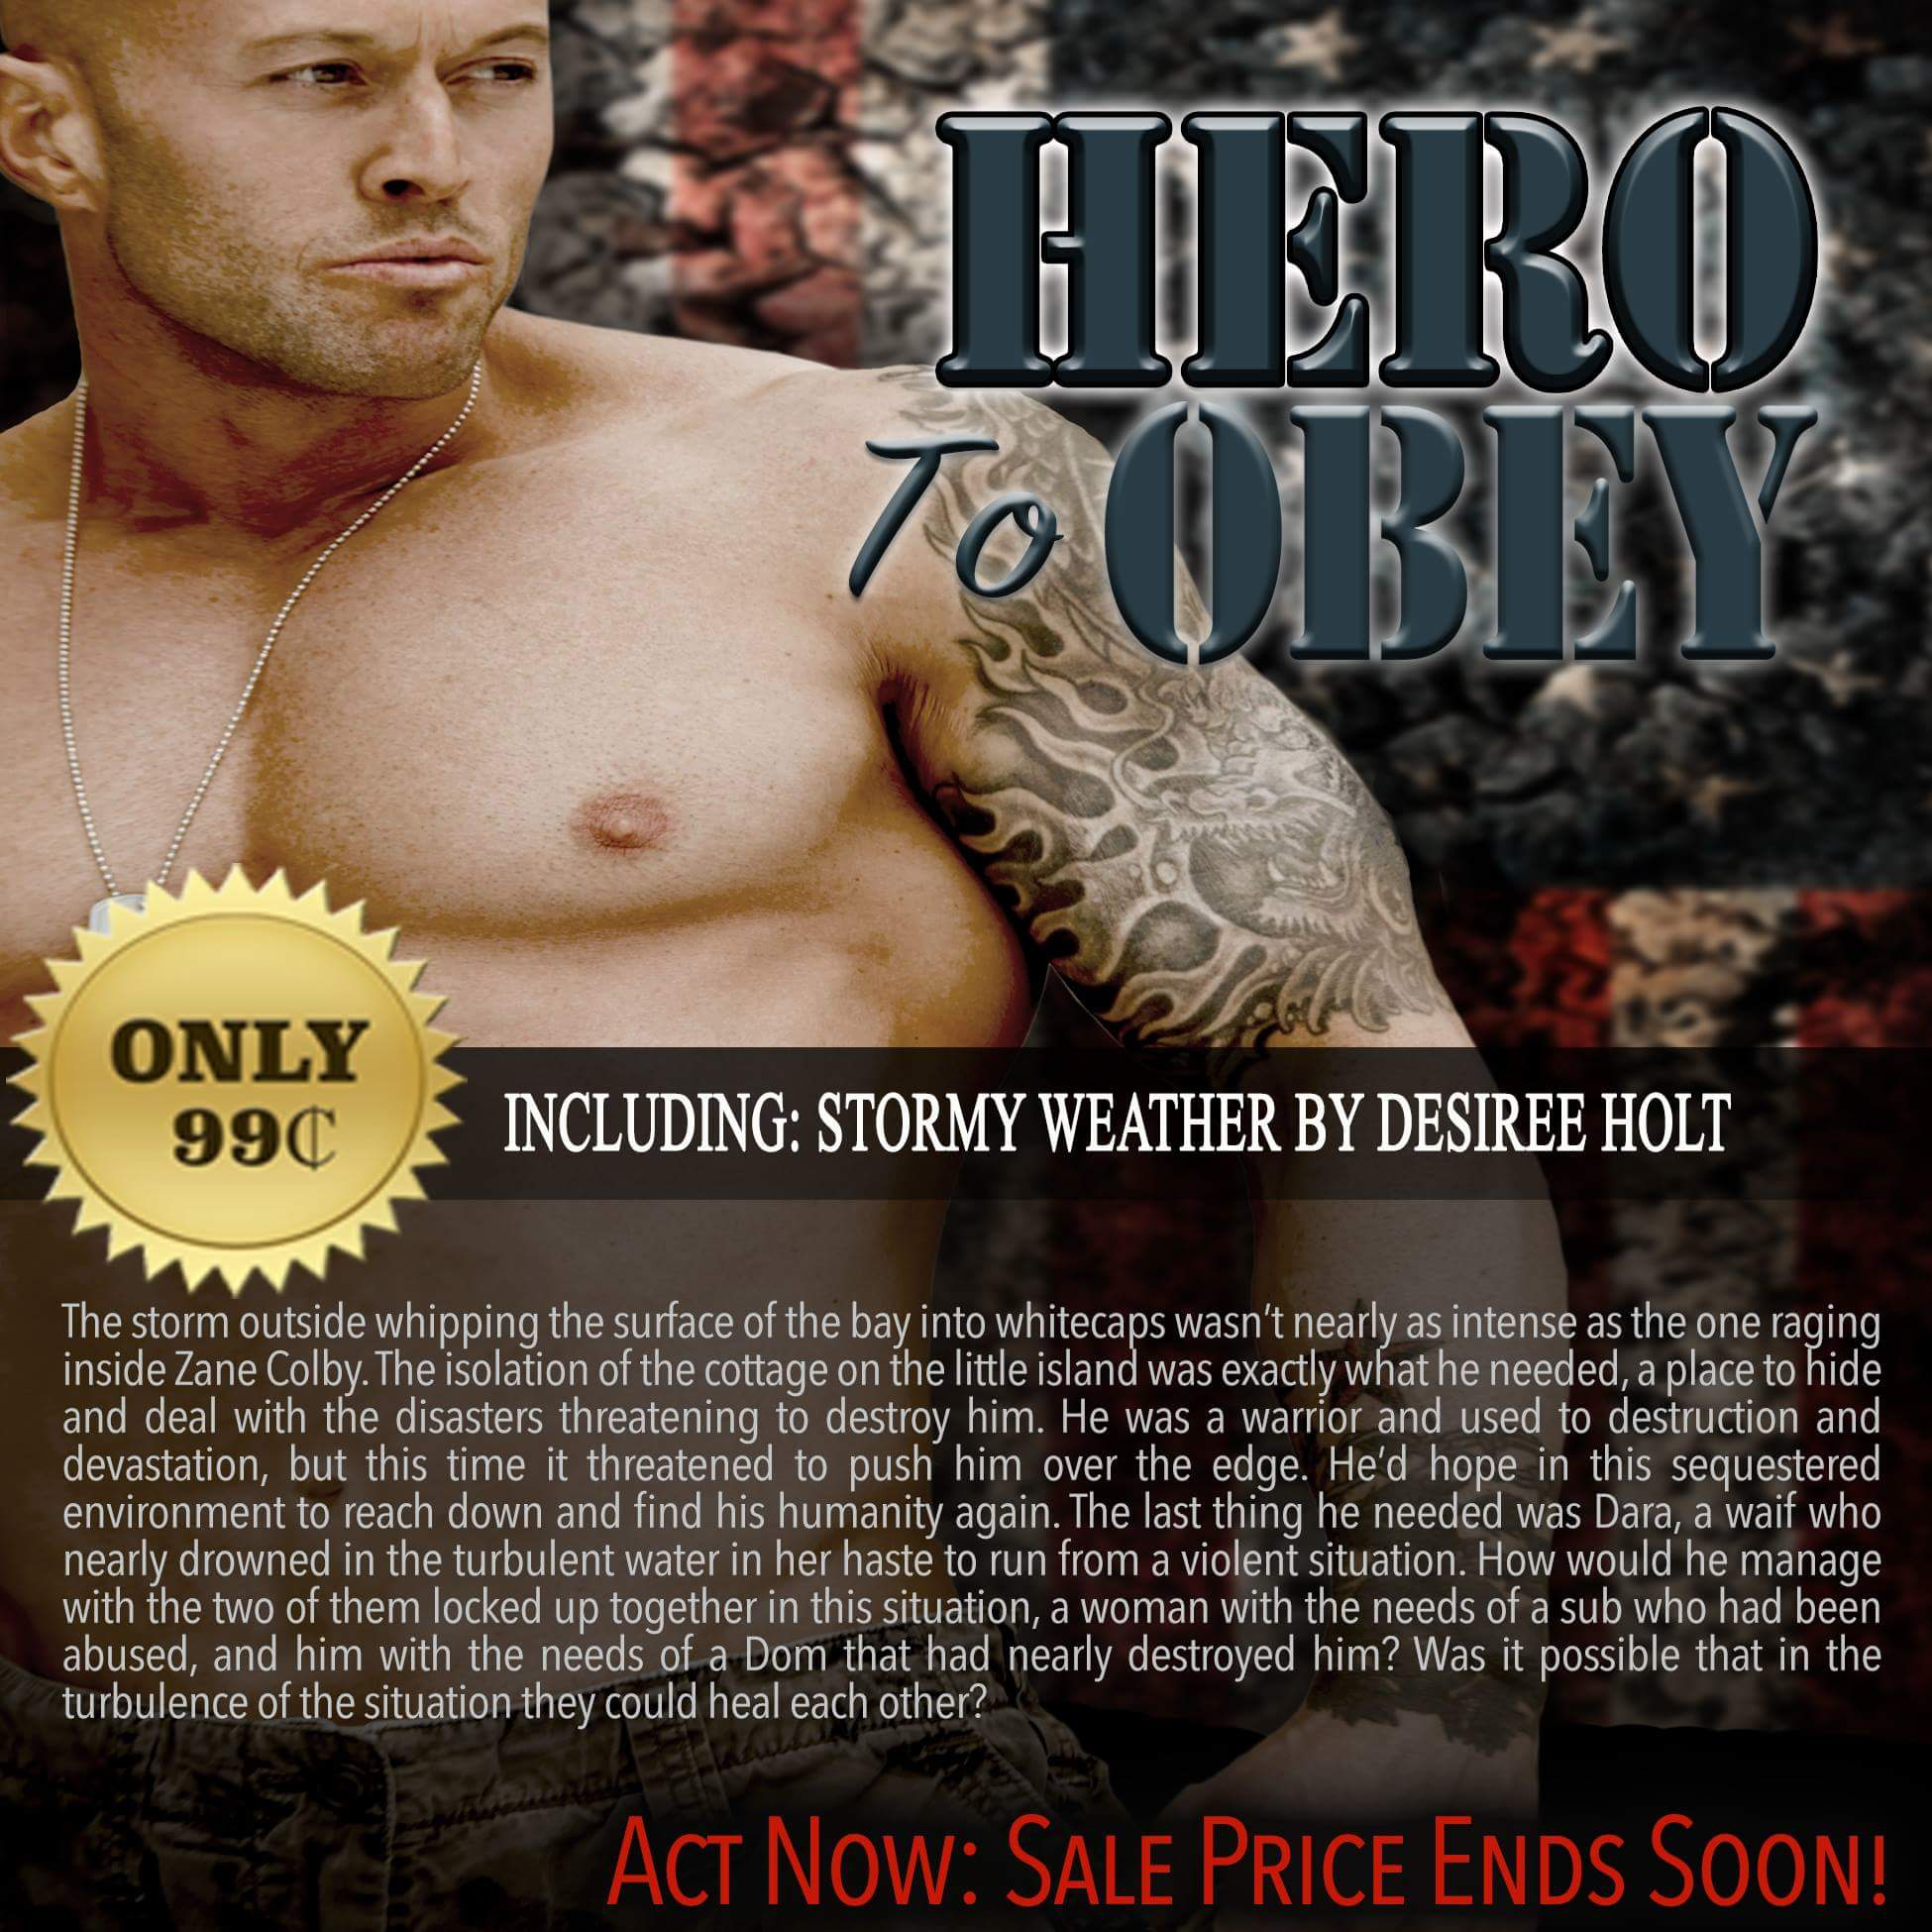 Hero To Obey Book Cover Model Actor John Joseph Quinlan by Desiree Holt #JohnQuinlan #Hero2obey